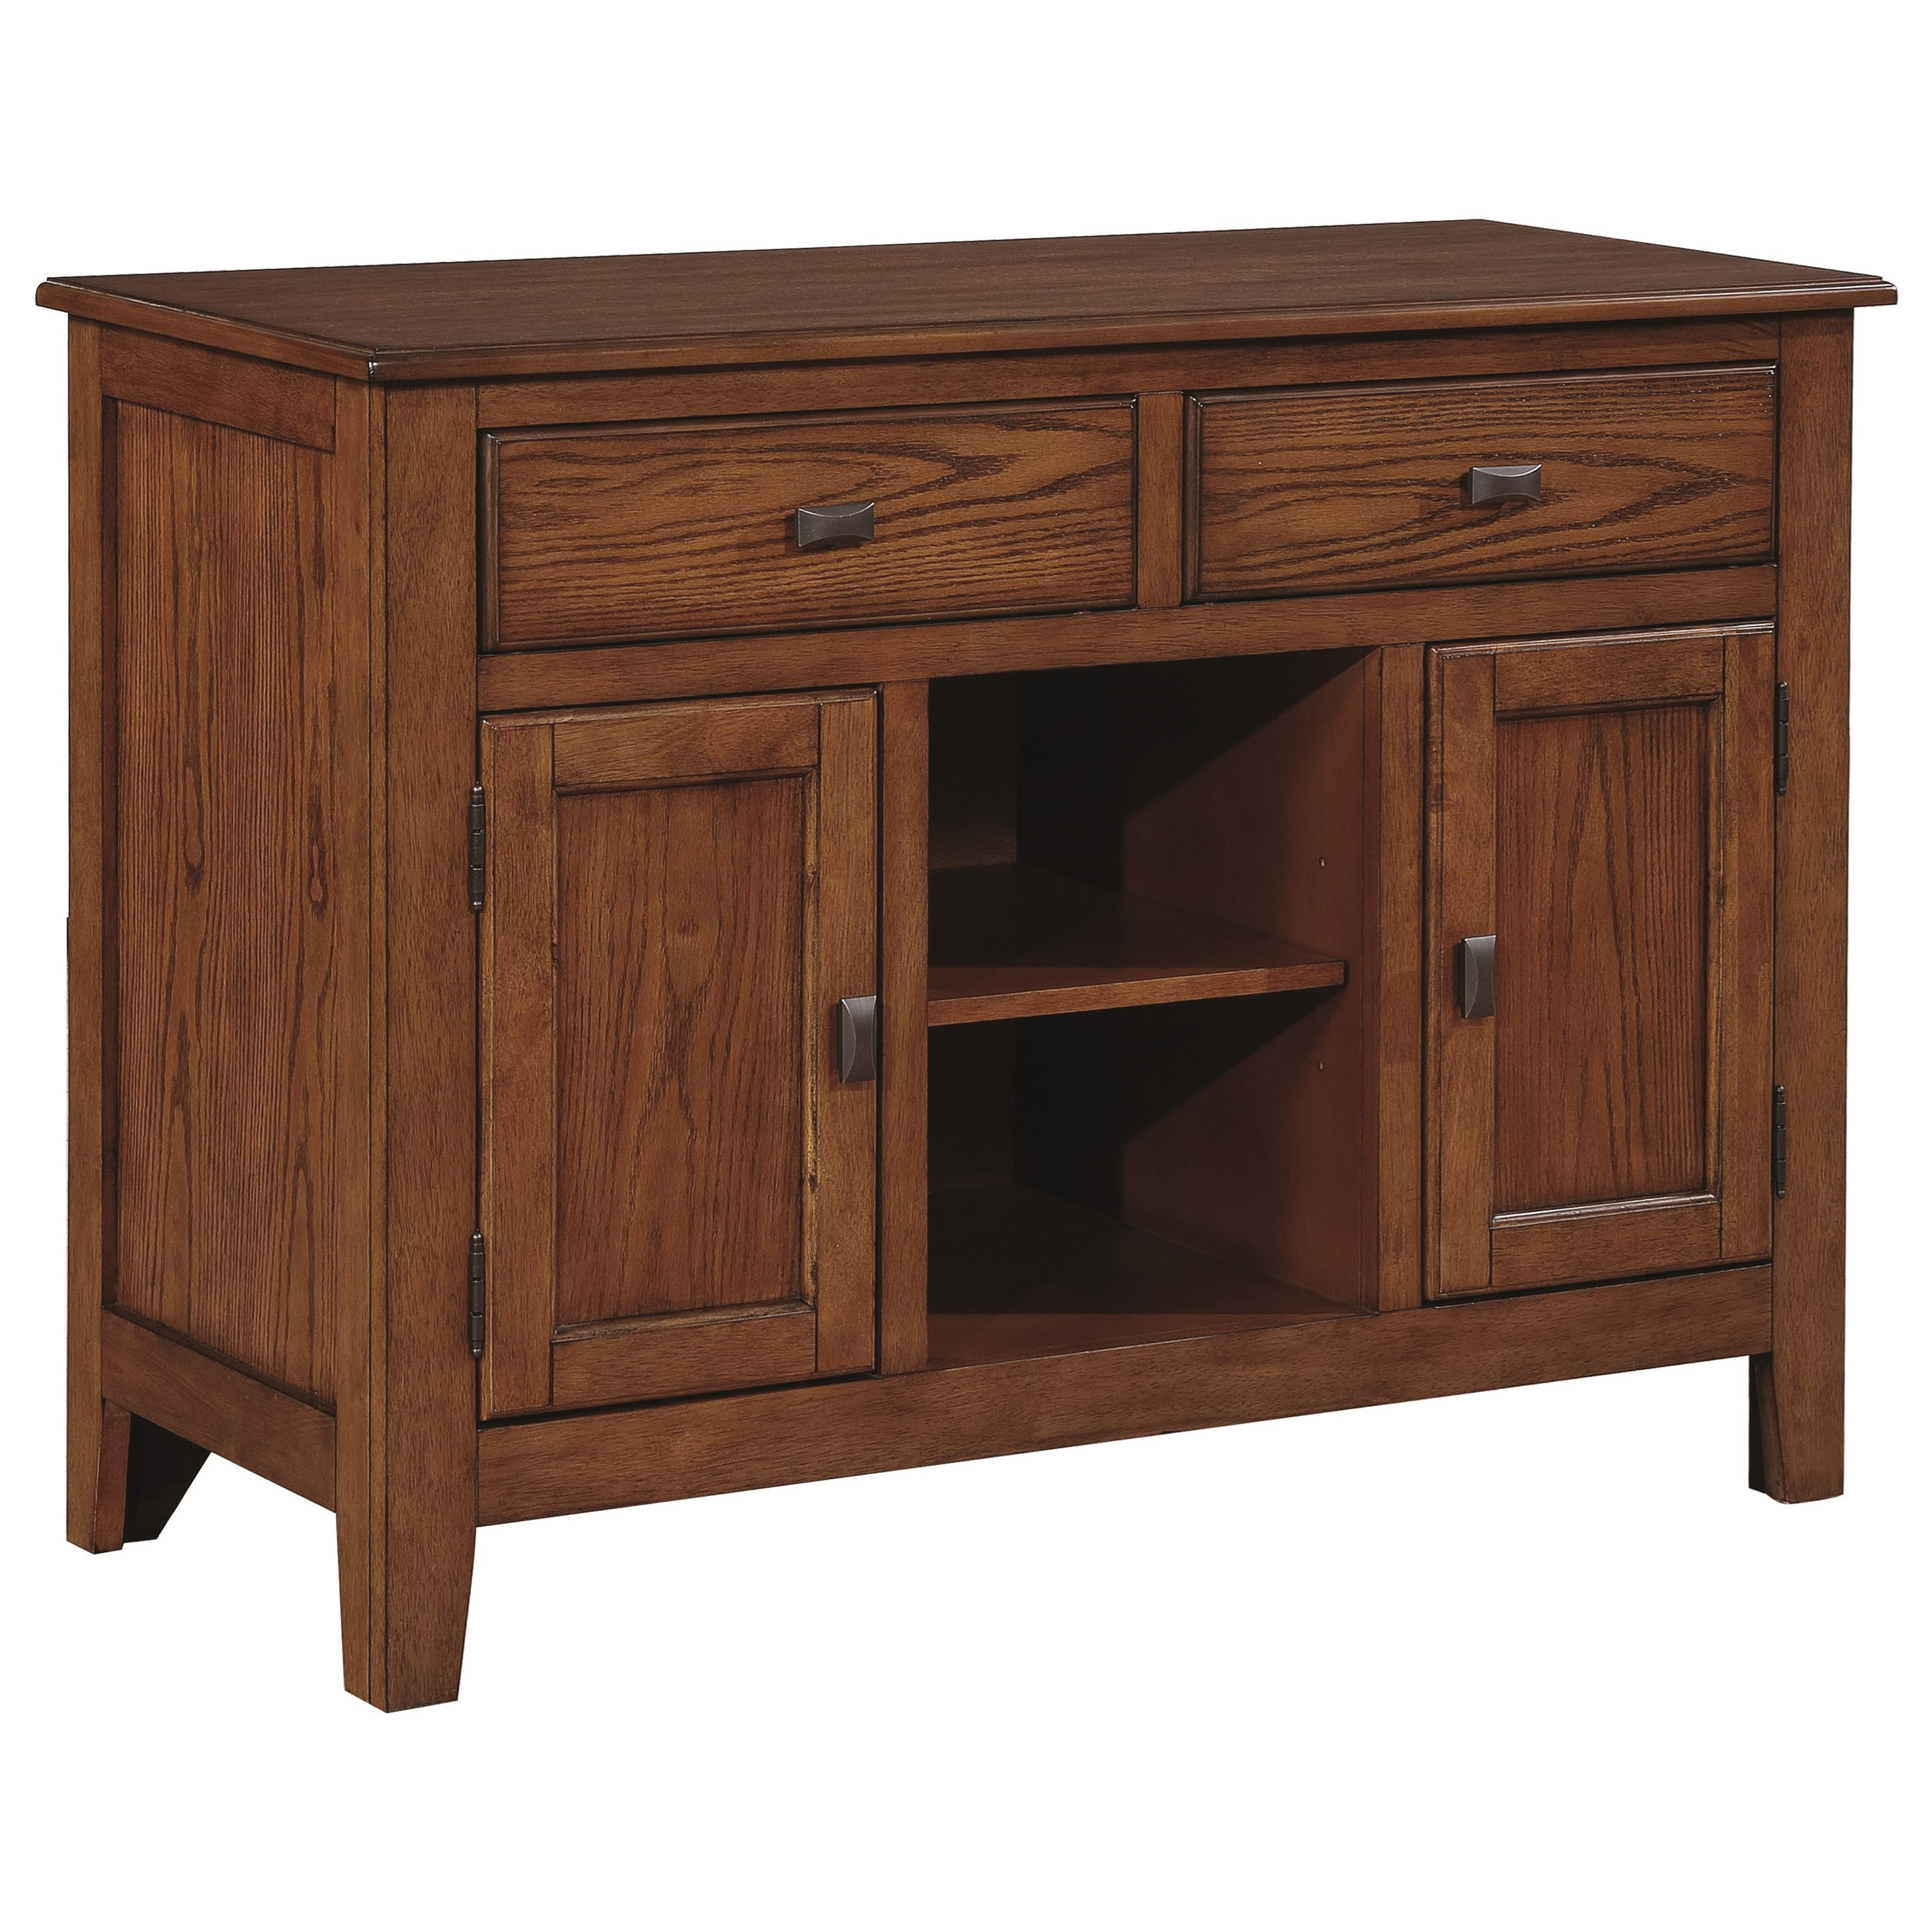 Nelms Dining Server by Coaster at Lapeer Furniture & Mattress Center